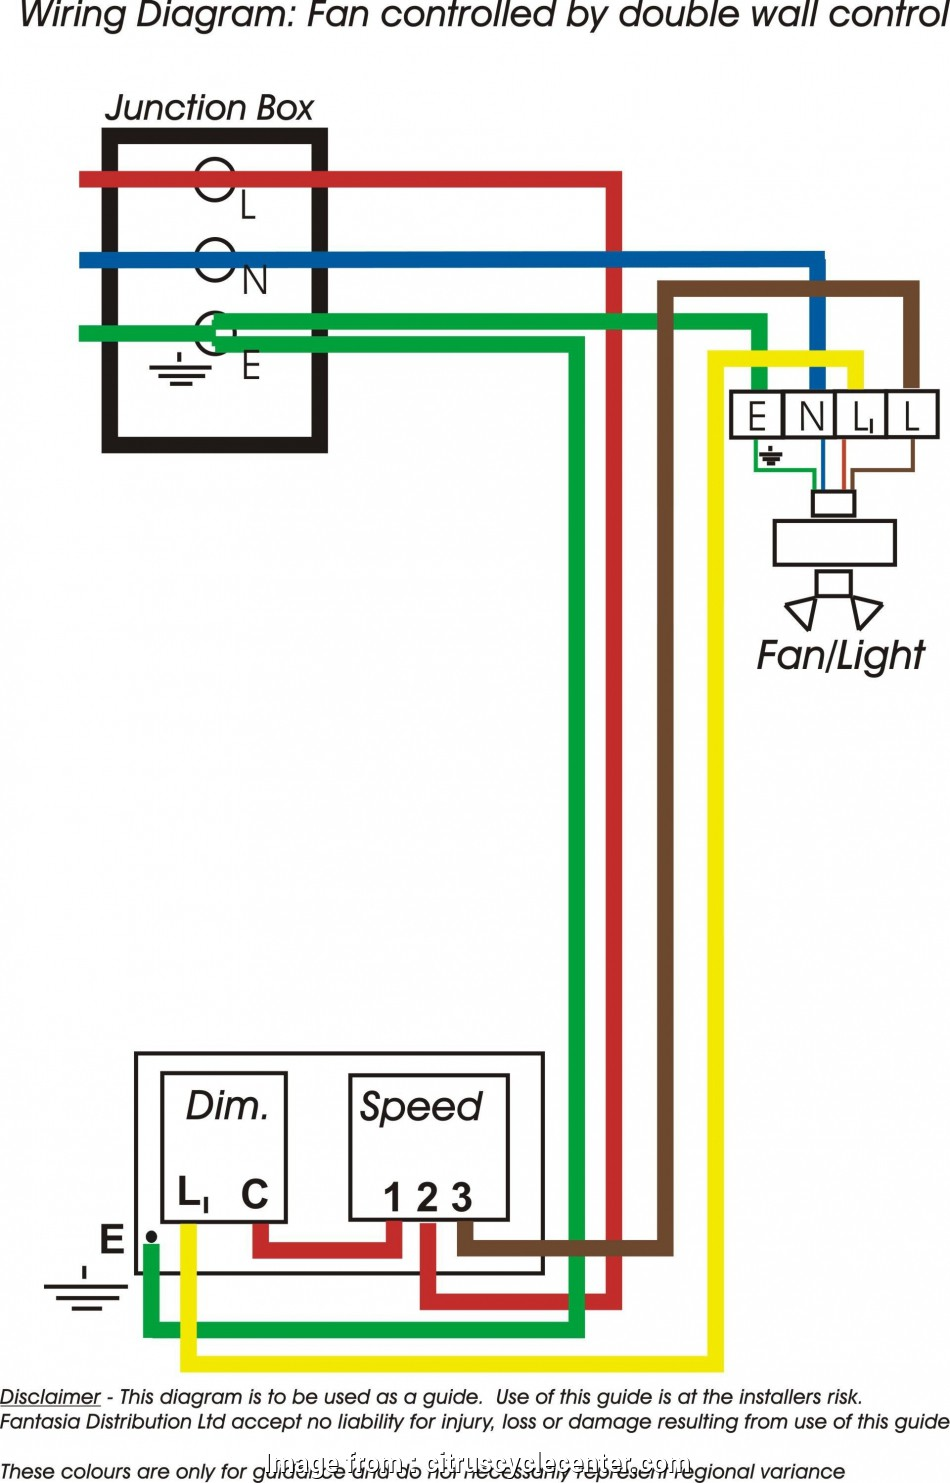 wiring for ceiling fan with light kit Hunter Ceiling, Light, Wiring Diagram 2018 Casablanca Fans With Light Wiring Diagram Data Wiring Diagrams • 10 Simple Wiring, Ceiling, With Light Kit Images